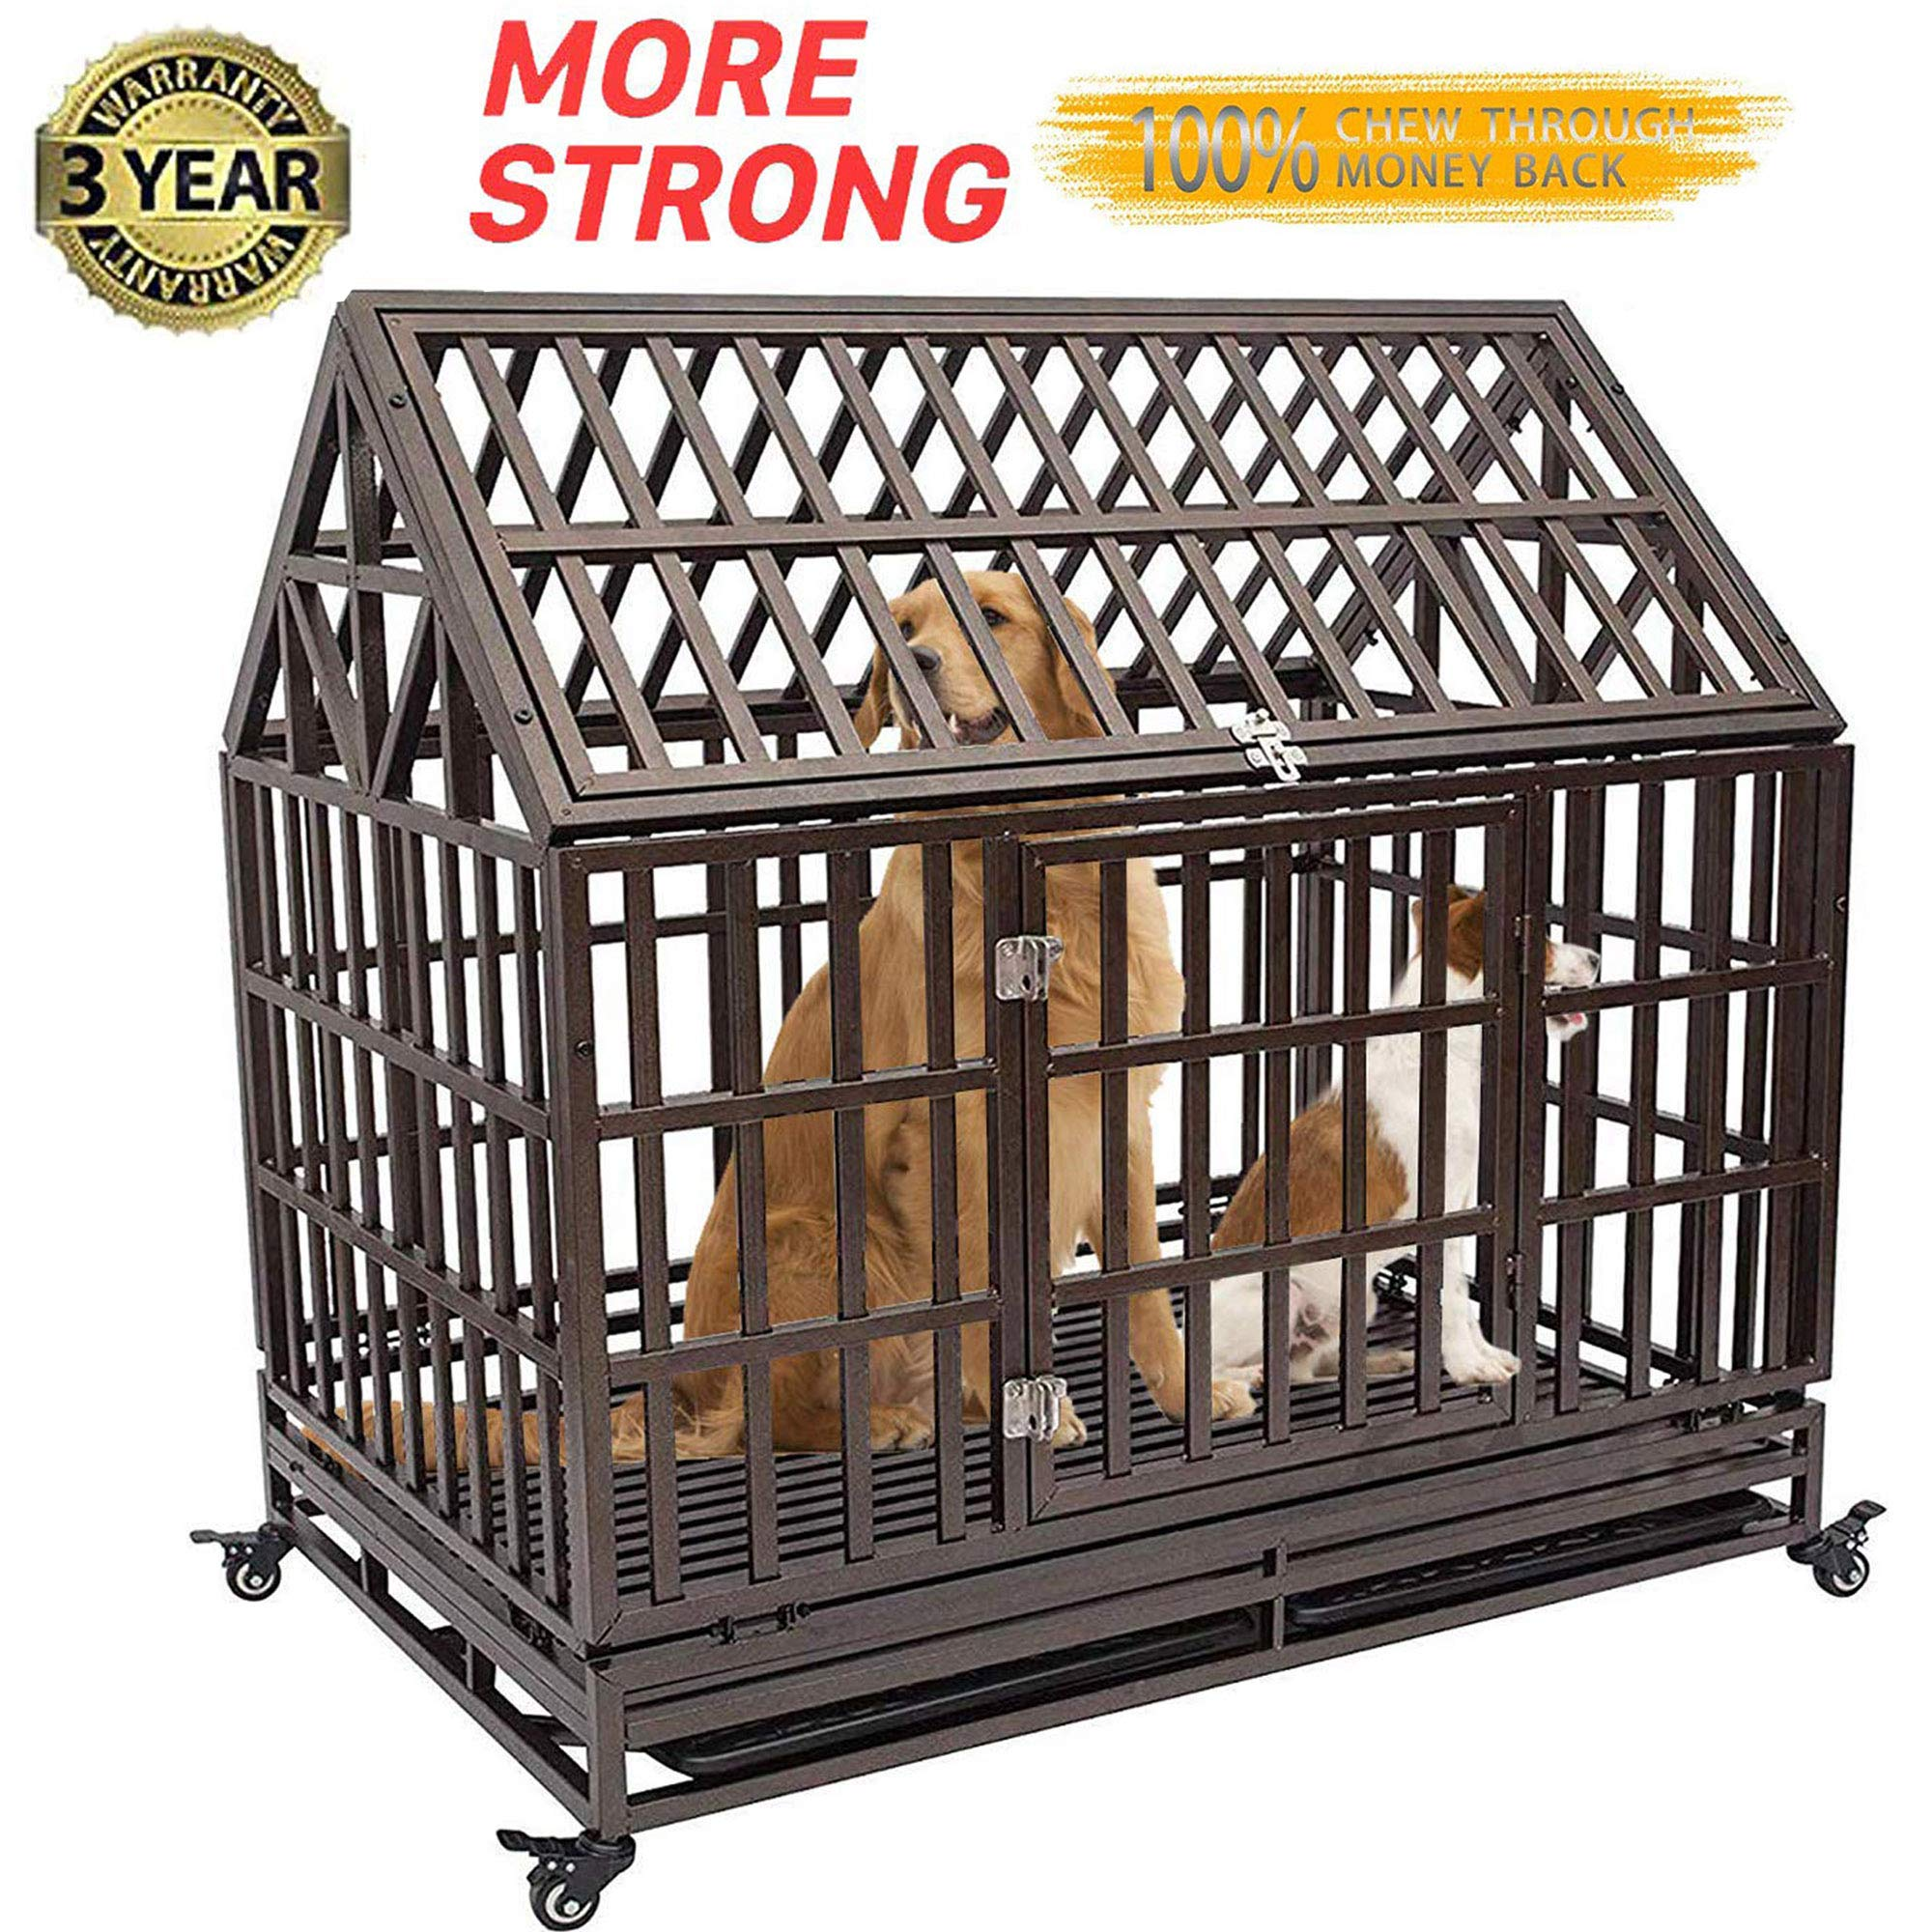 Gelinzon Roof Dog Cage Crate Kennel Heavy Duty Large Homestead Serise for Large Dogs with Patent Lock, Tray and Four Lockable Wheels, 46''/Black by Gelinzon